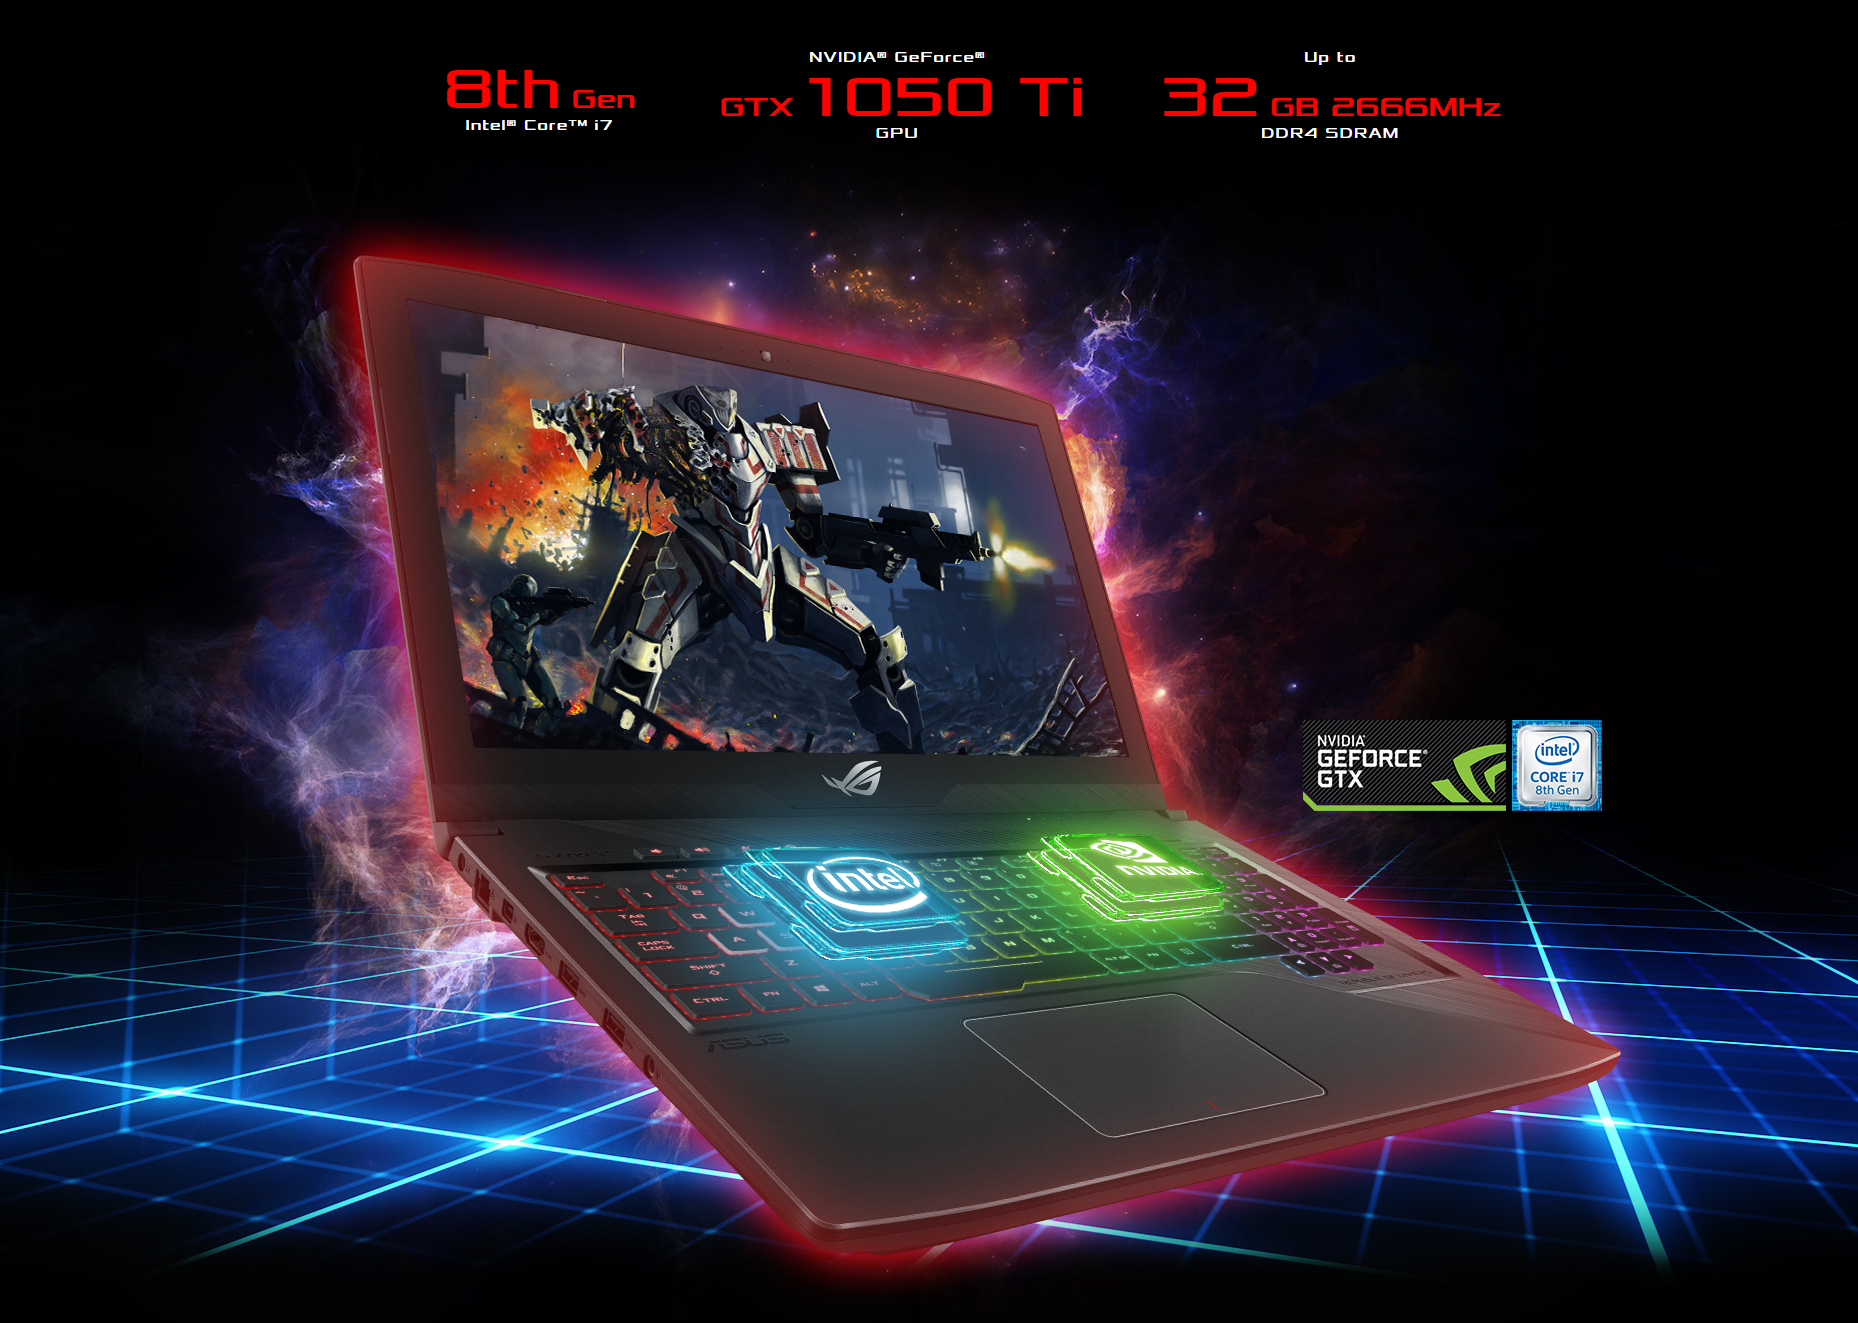 Asus Rog Strix Gl503ge 156 120hz 3ms Core I7 8750h Gtx 1050ti Tuf Fx504gm I5 8300h 8gb 128gb 1tb Sshd Gtx1060 6gb W10 Specifications May Vary According To Configuration